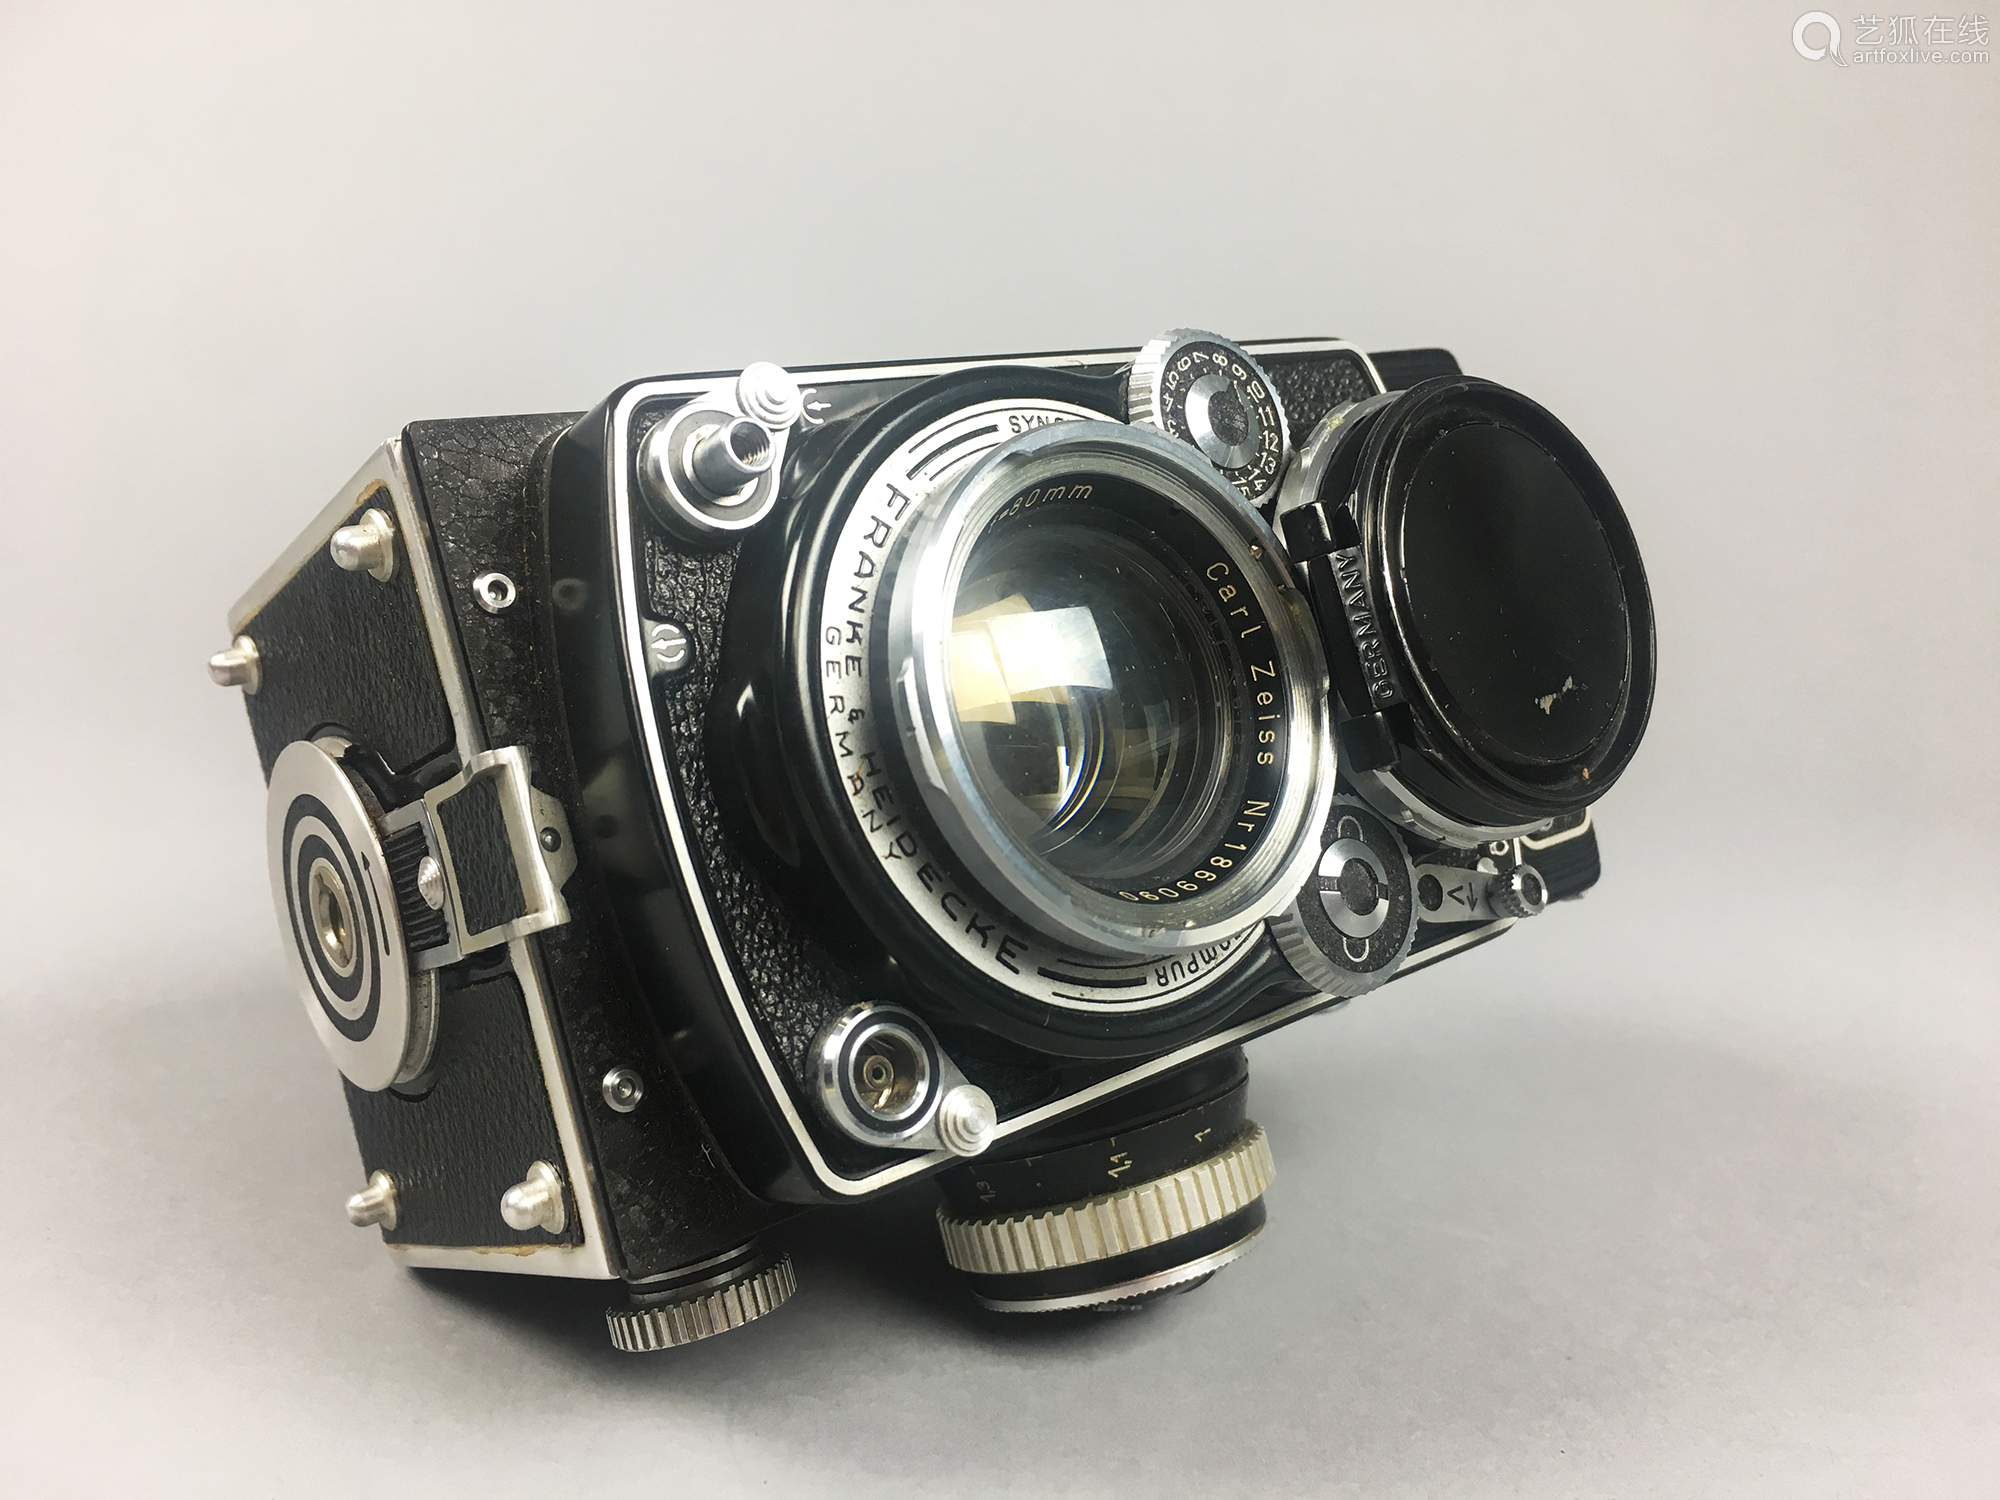 A Rare Rolleiflex Camera In Original Box